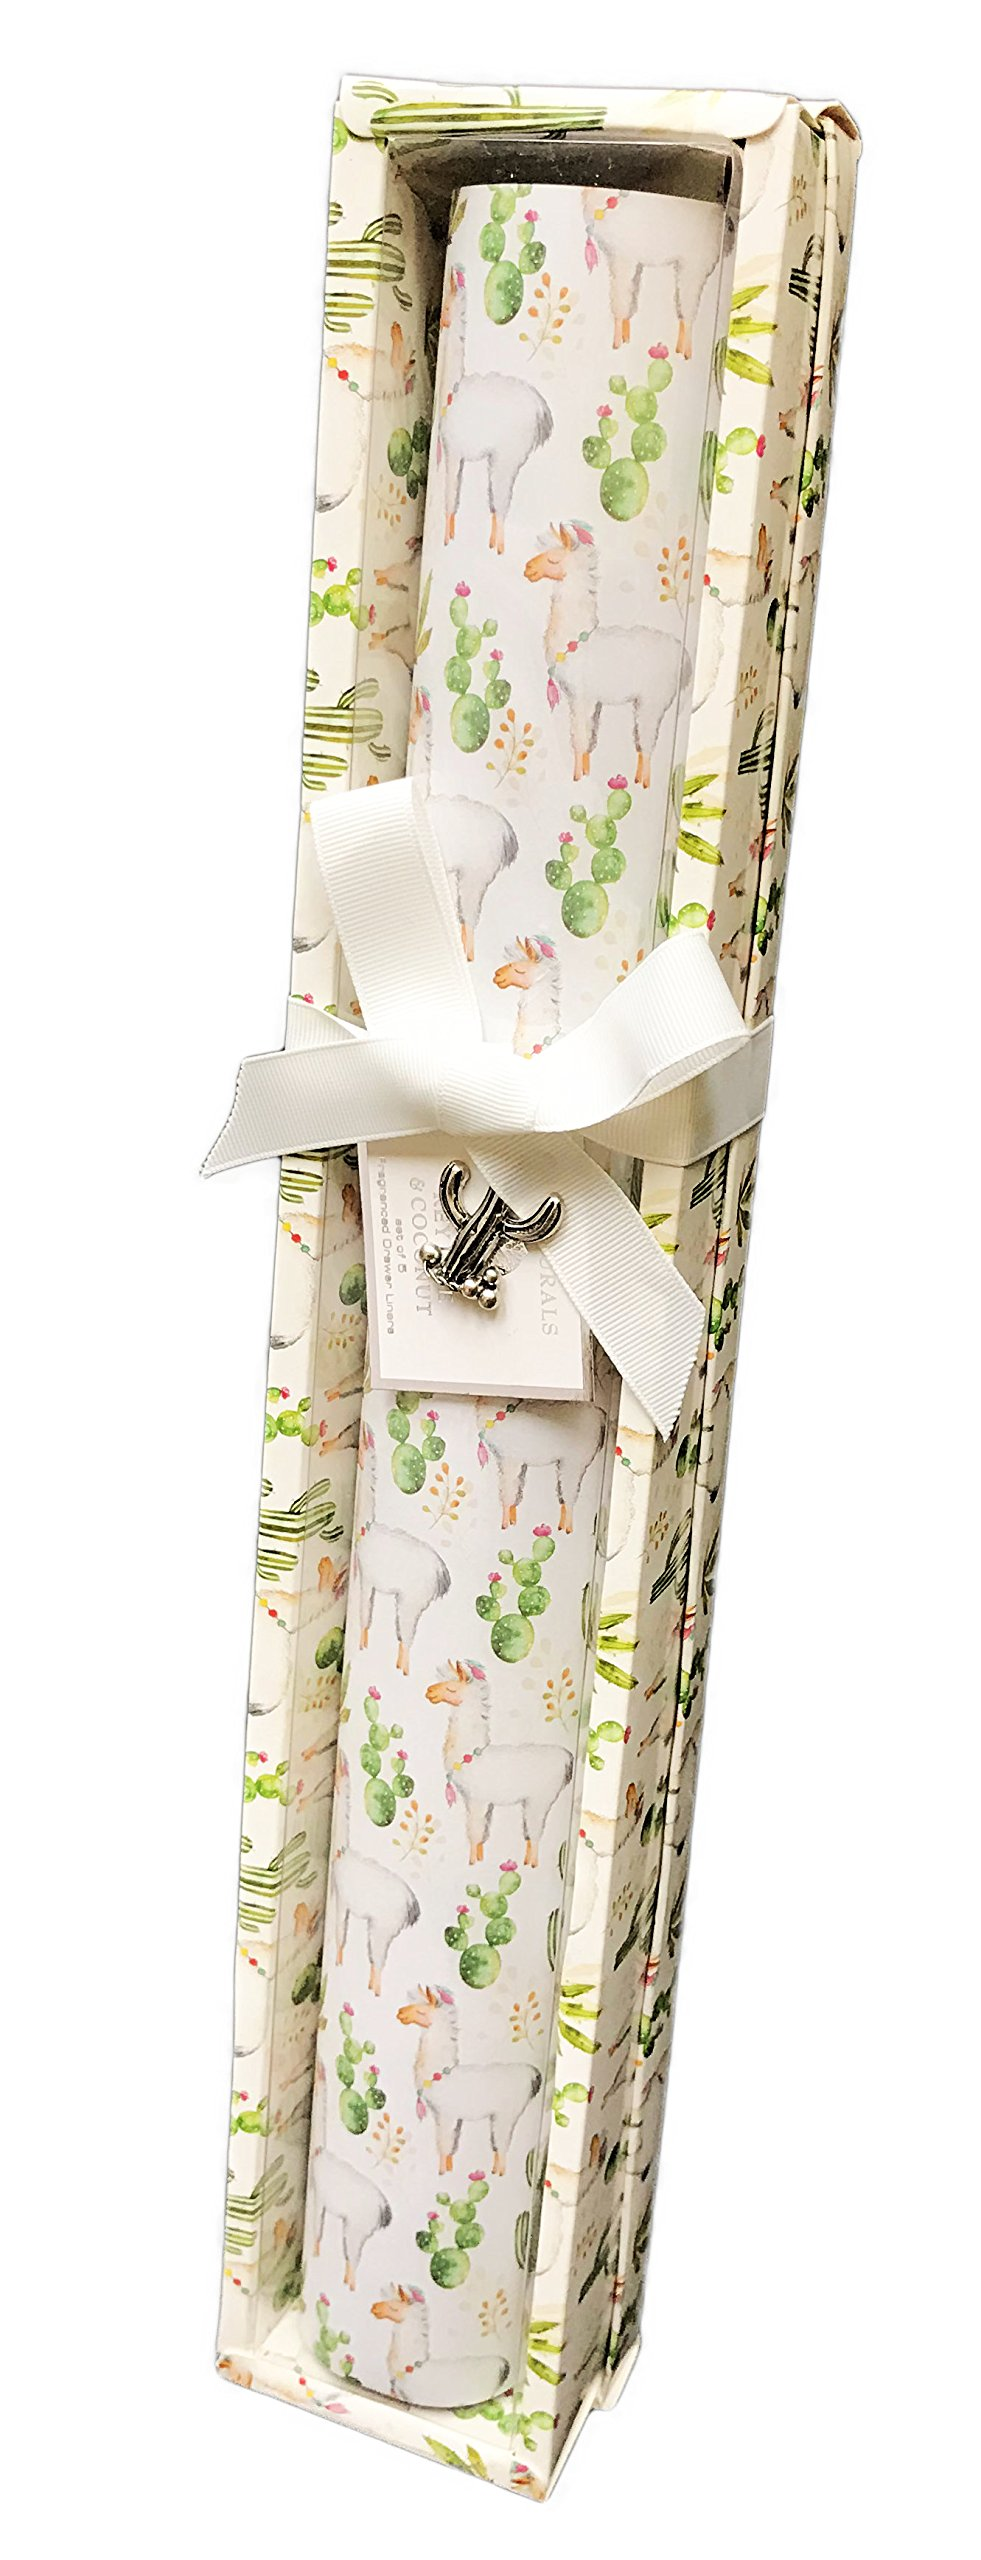 GC Naturals Whimsical Desert Llama's & Cacti Set of 5 Fragranced Drawer Liners (Key Lime & Coconut) by GC Naturals